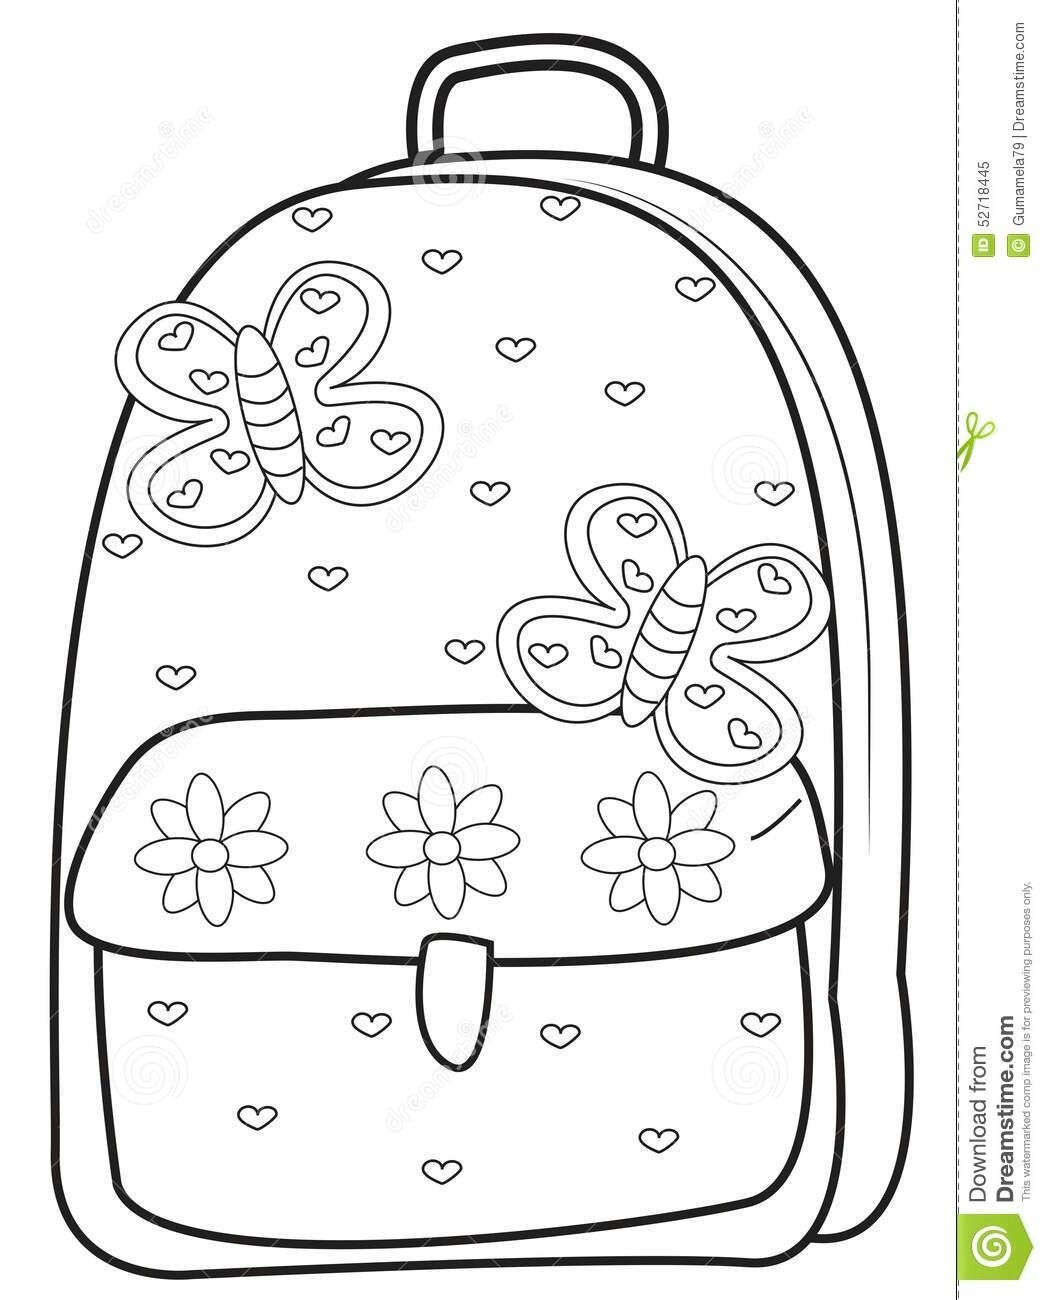 Pin By Ubbsi On Colouring Pages